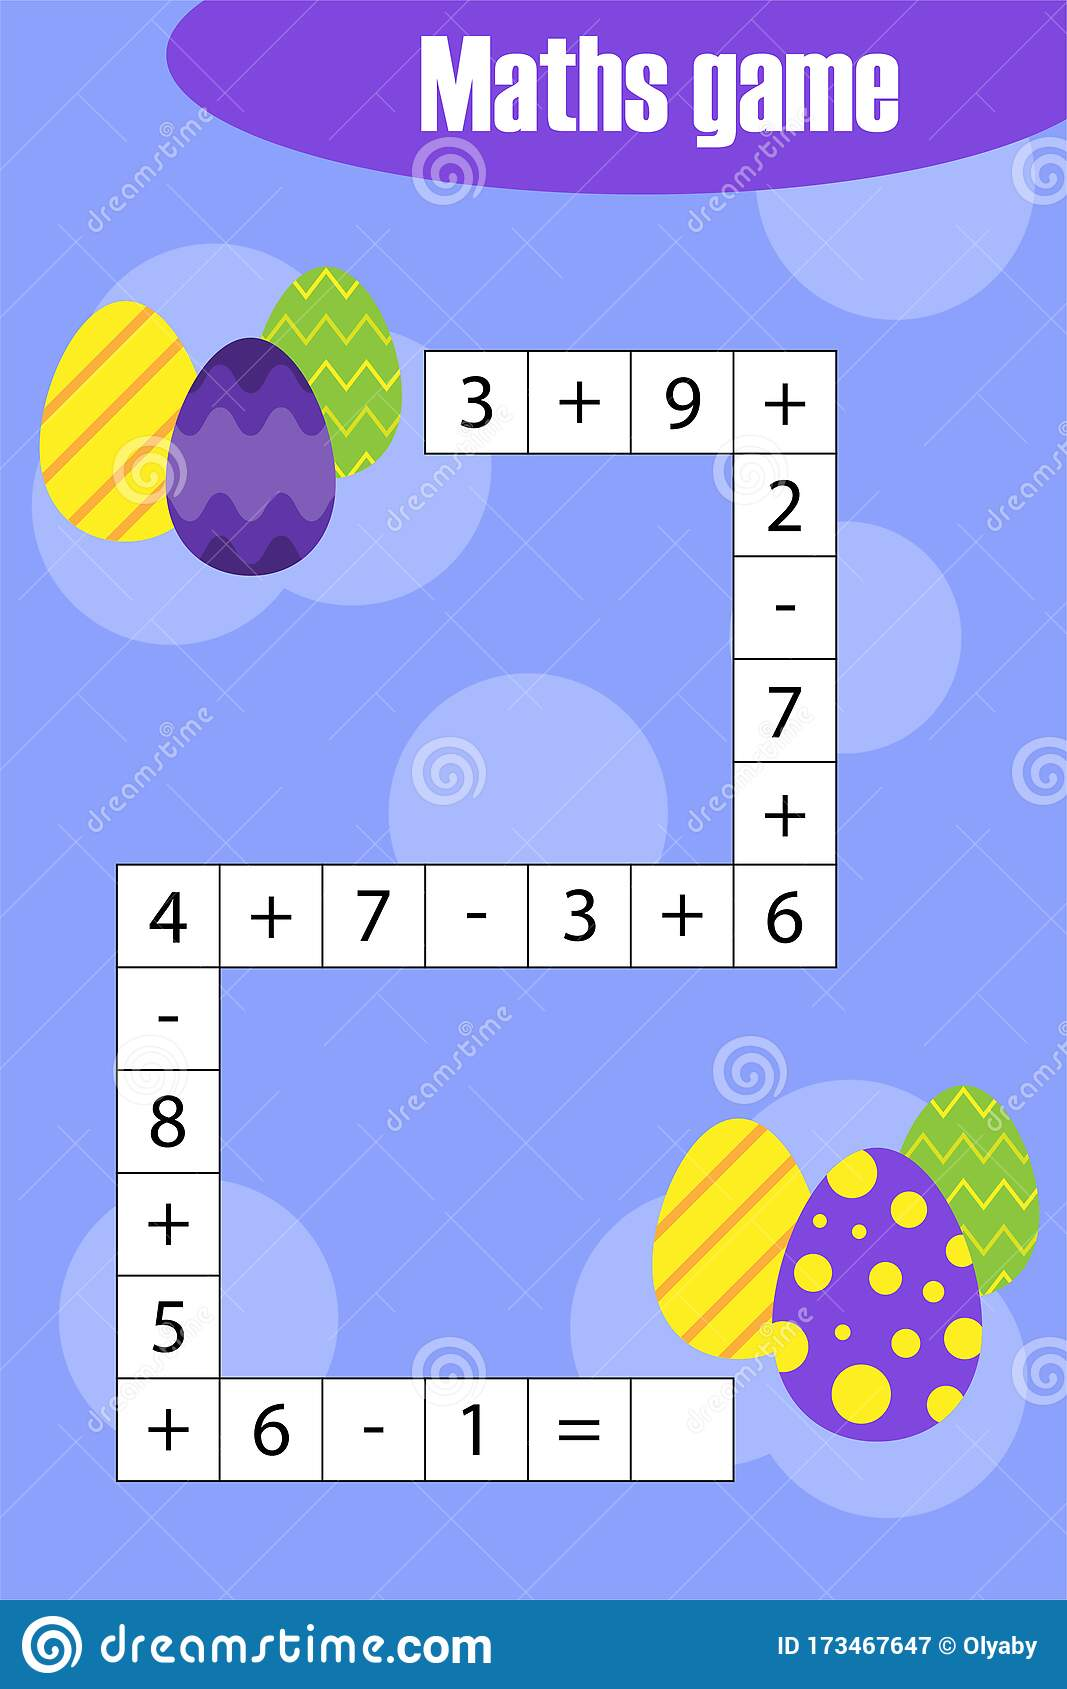 Maths Chain Game With Easter Eggs For Children Education